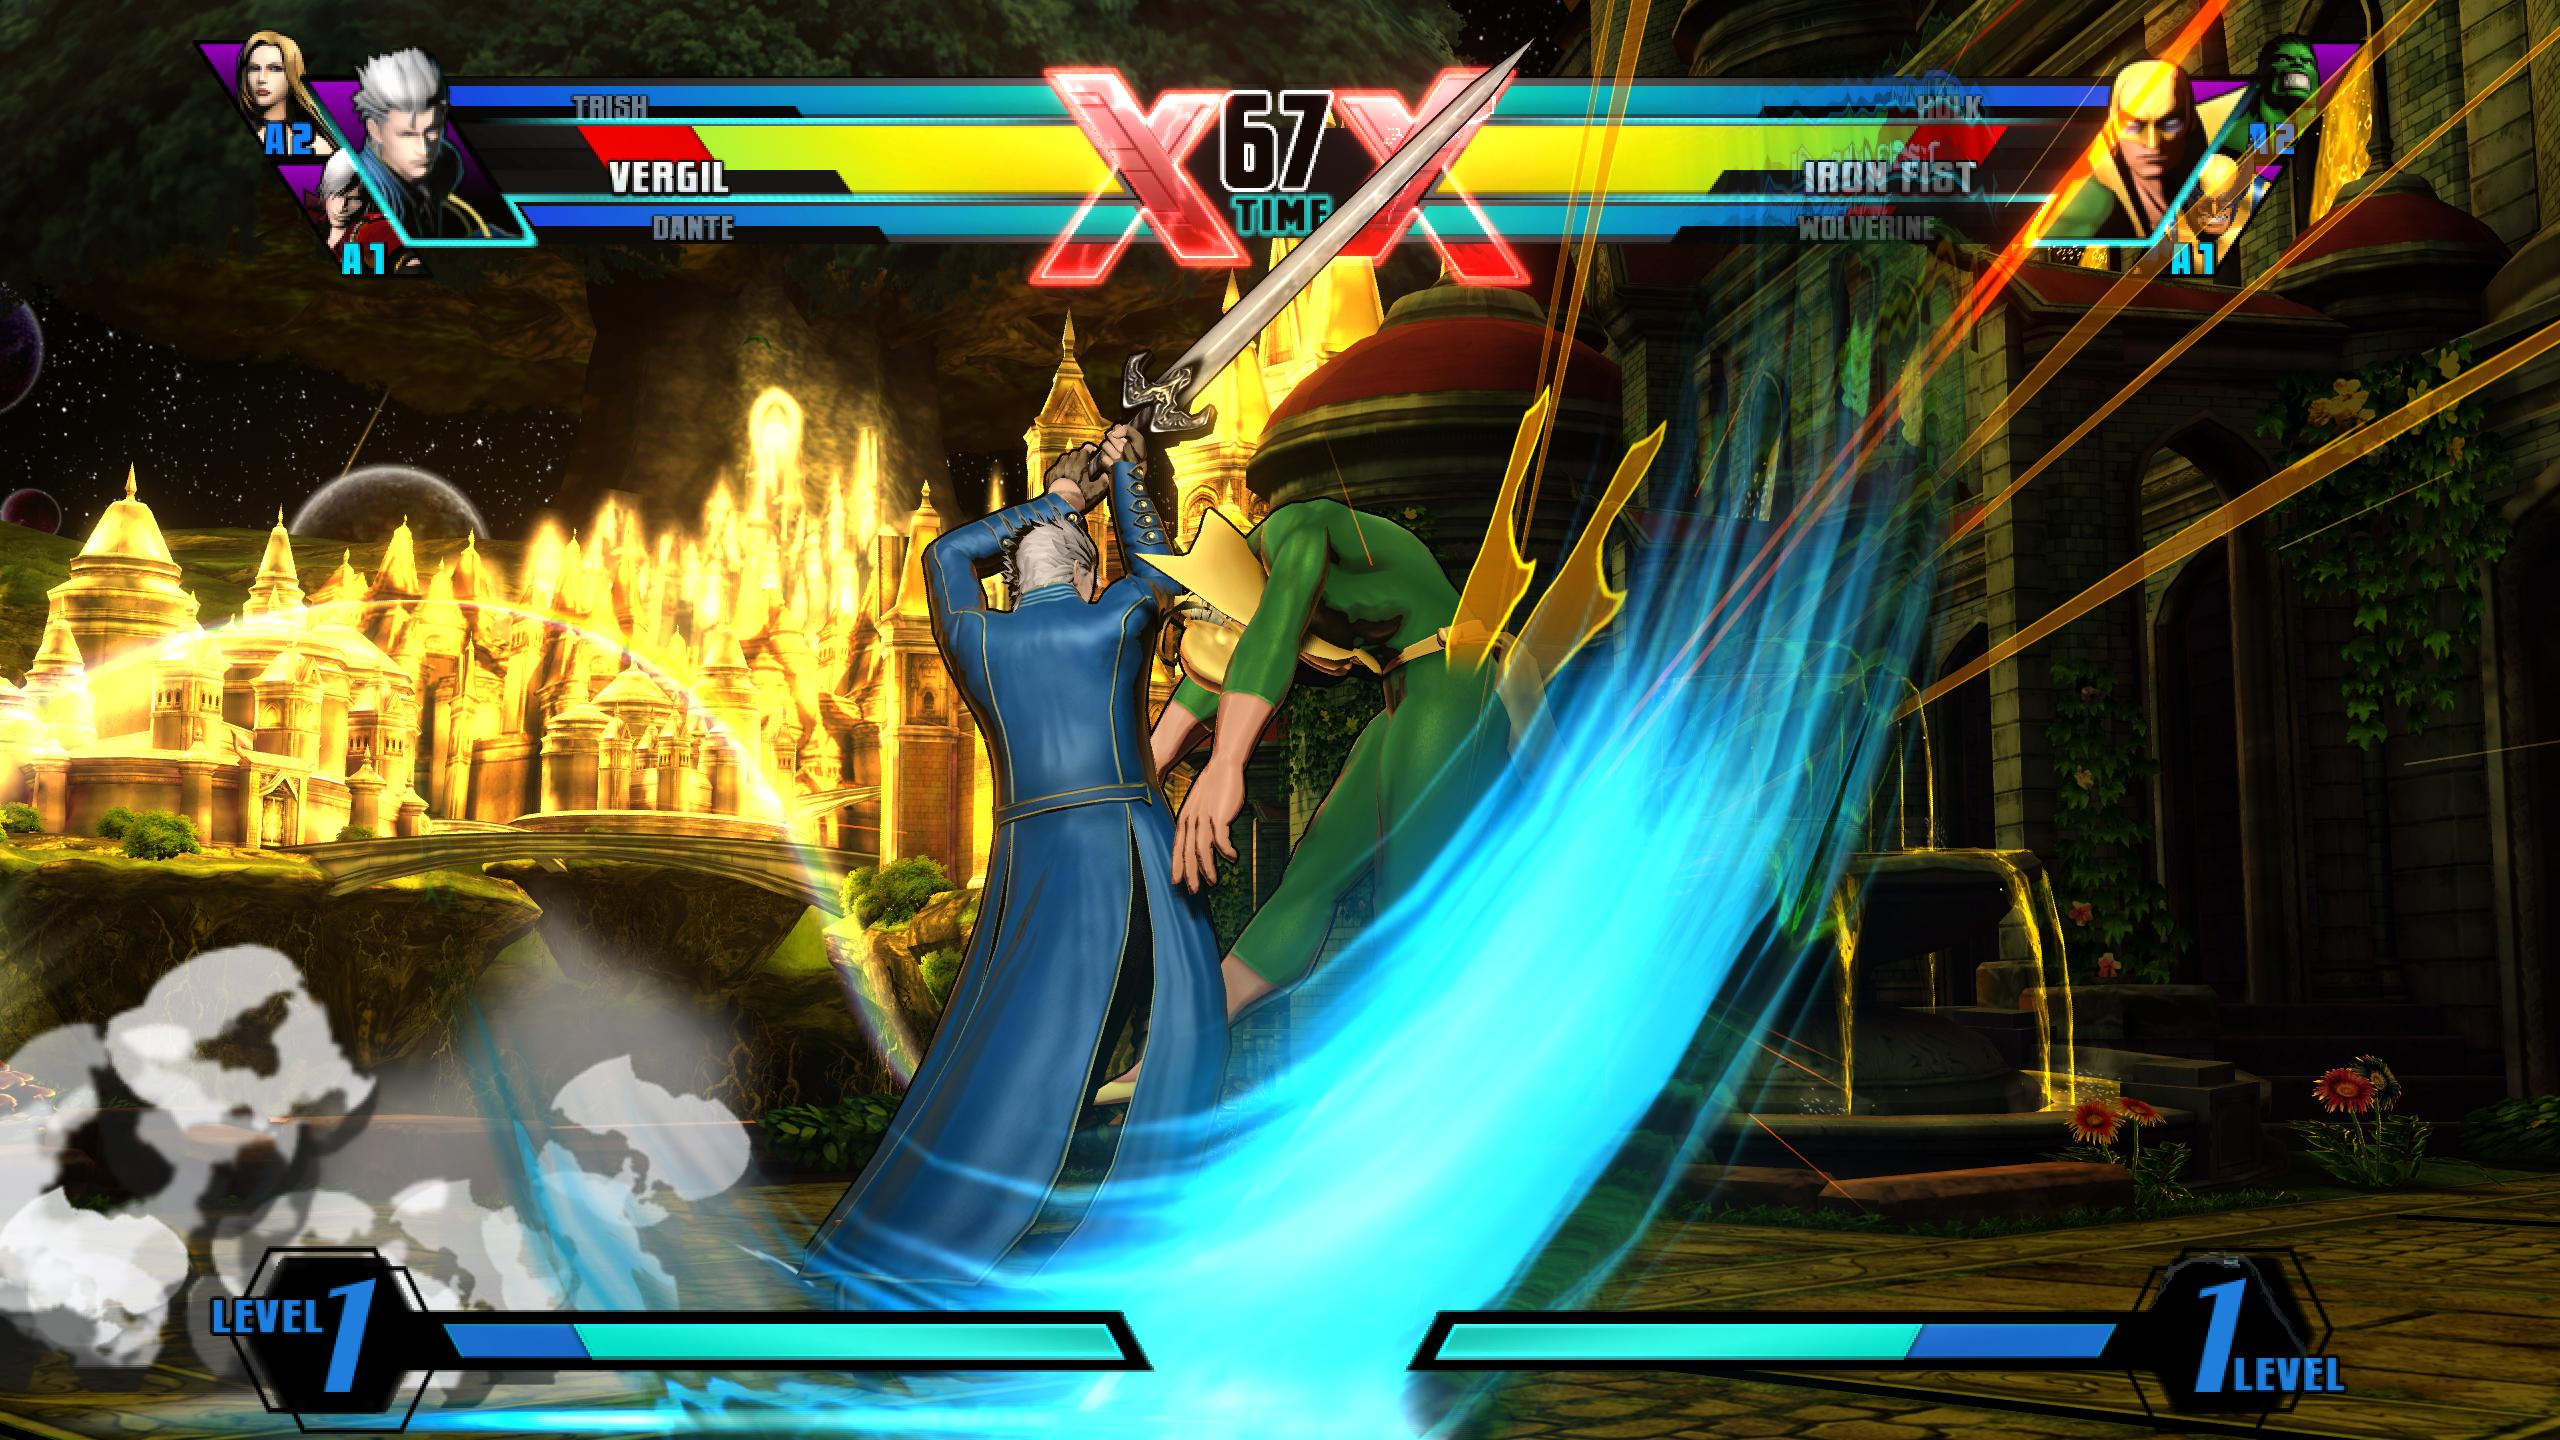 Vergil dans Ultimate Marvel vs. Capcom 3 6151126748_0152f6a2dd_o